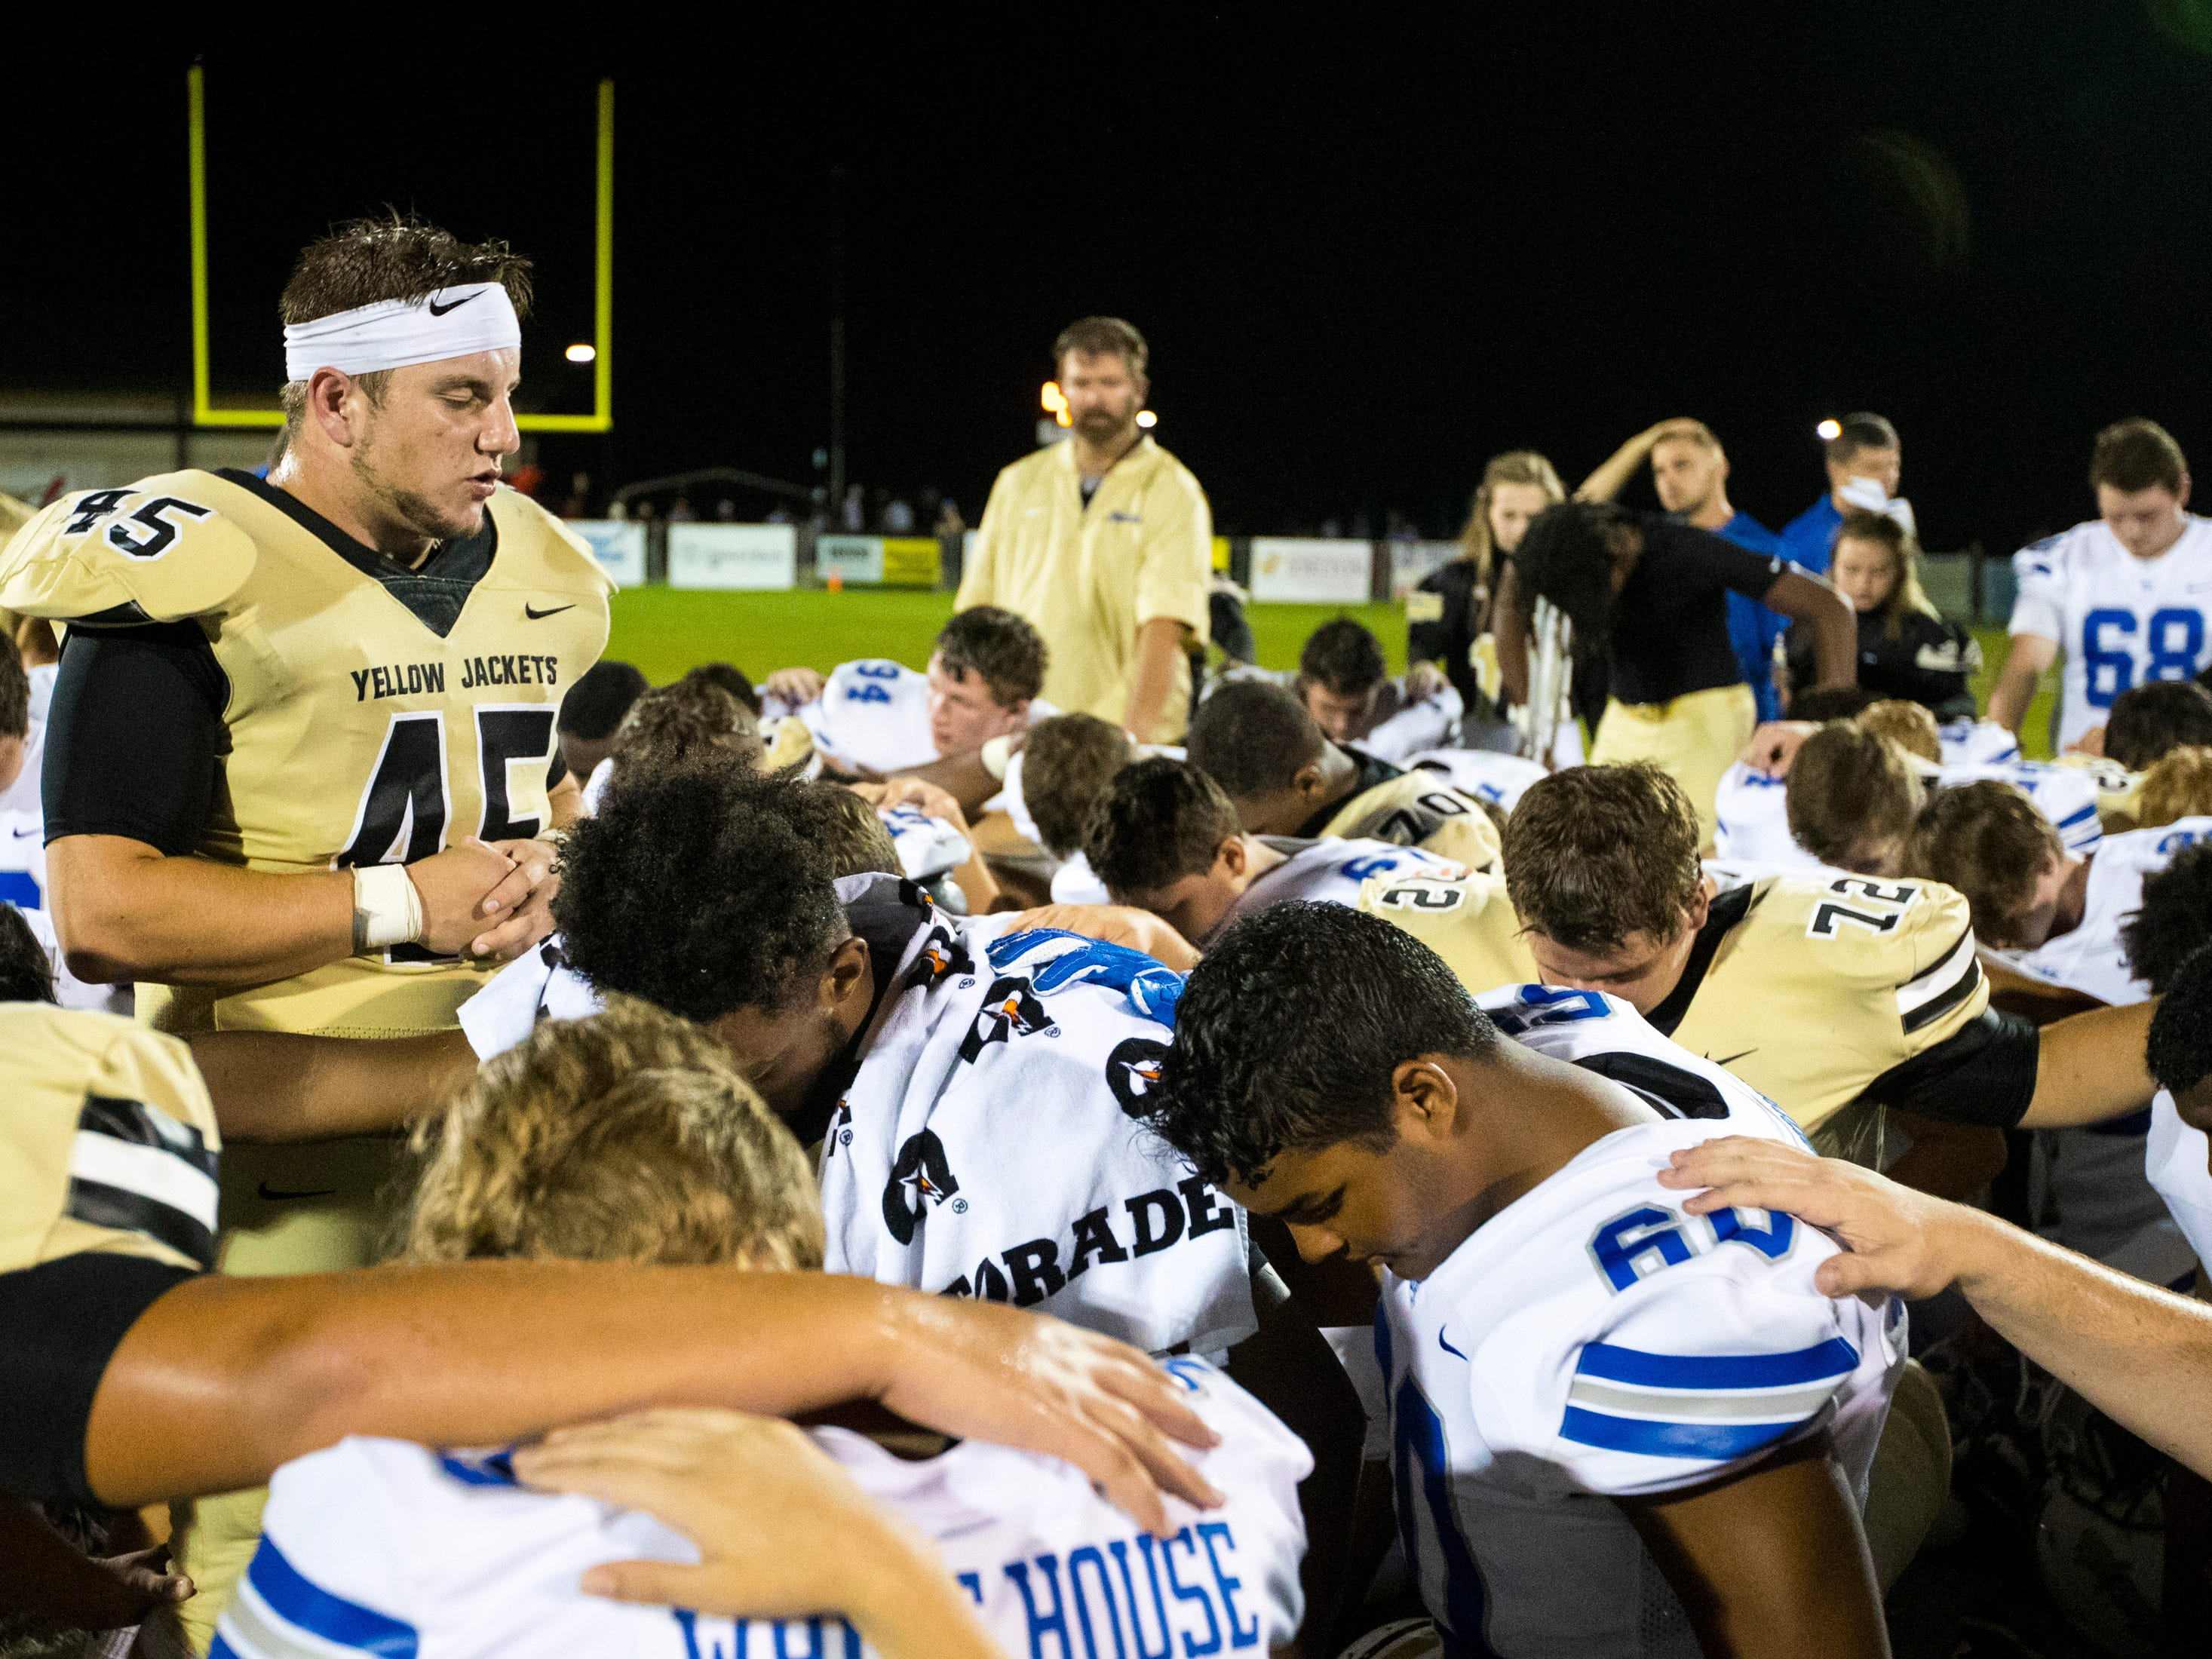 Springfield's Benjamin Galluzzi (45) leads a prayer after Springfield's game against White House at Springfield High School in Springfield on Friday, Sept. 14, 2018.